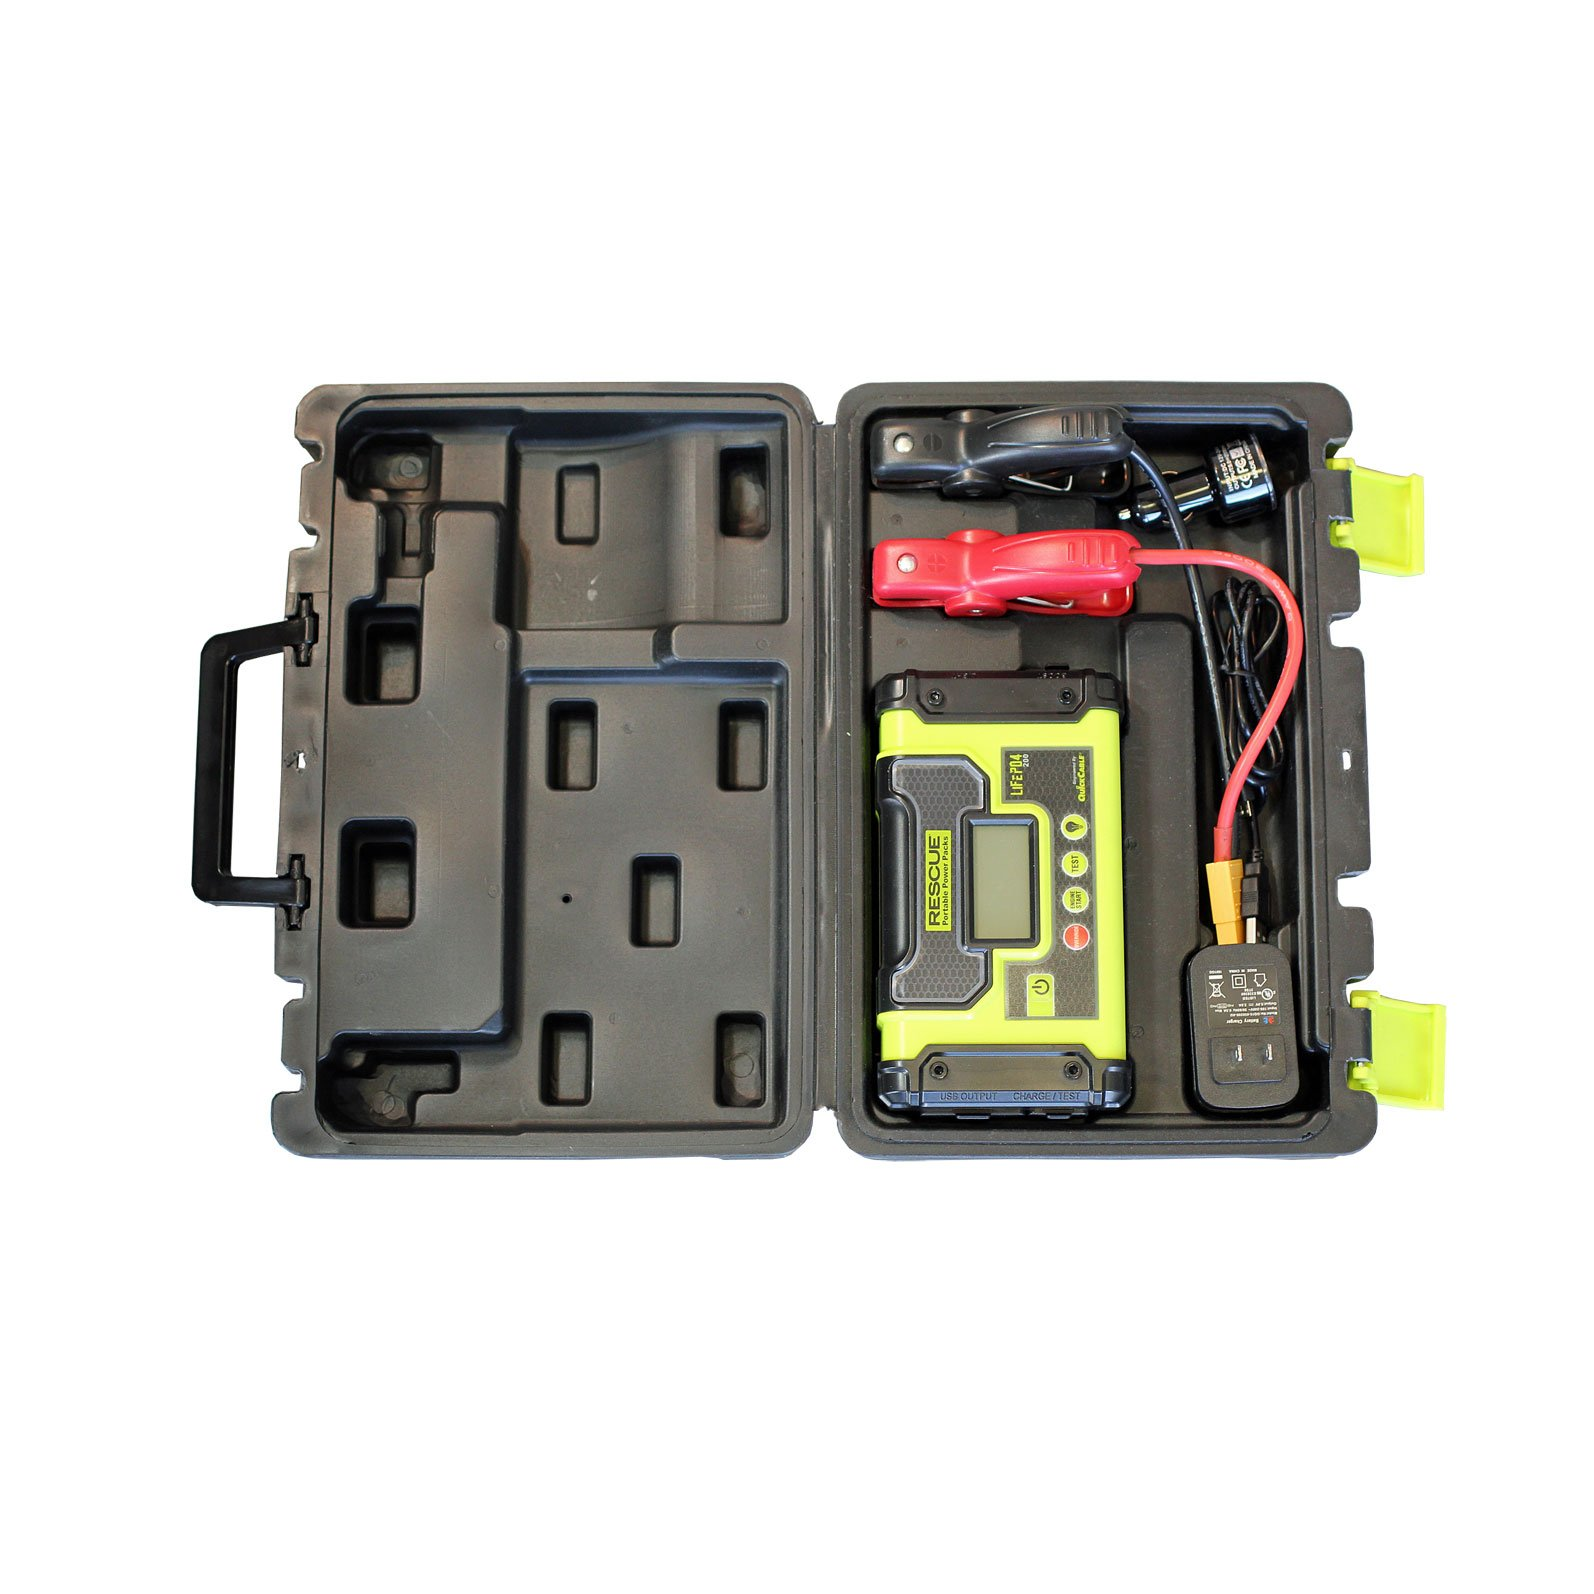 Quick Cable N2230 604022 Rescue Lifepo4 Jump Pack by Quick Cable (Image #2)